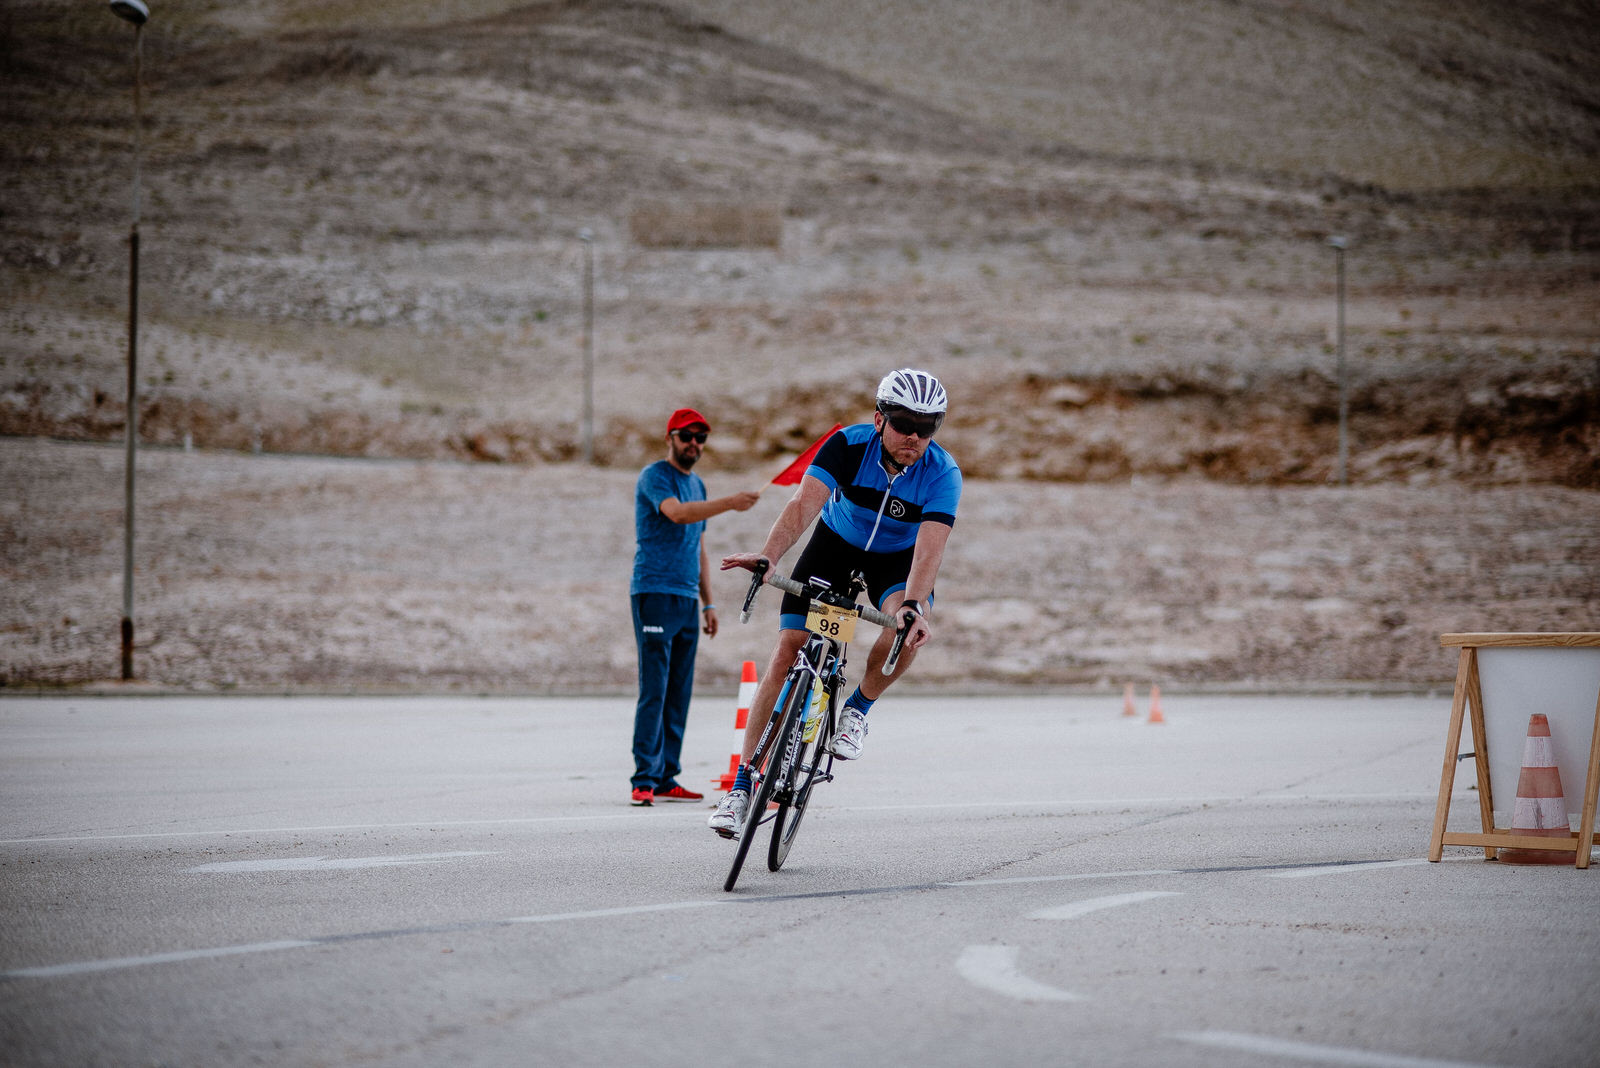 likaclub_Granfondo-Pag-–-Cycling-on-the-Moon_2019-34